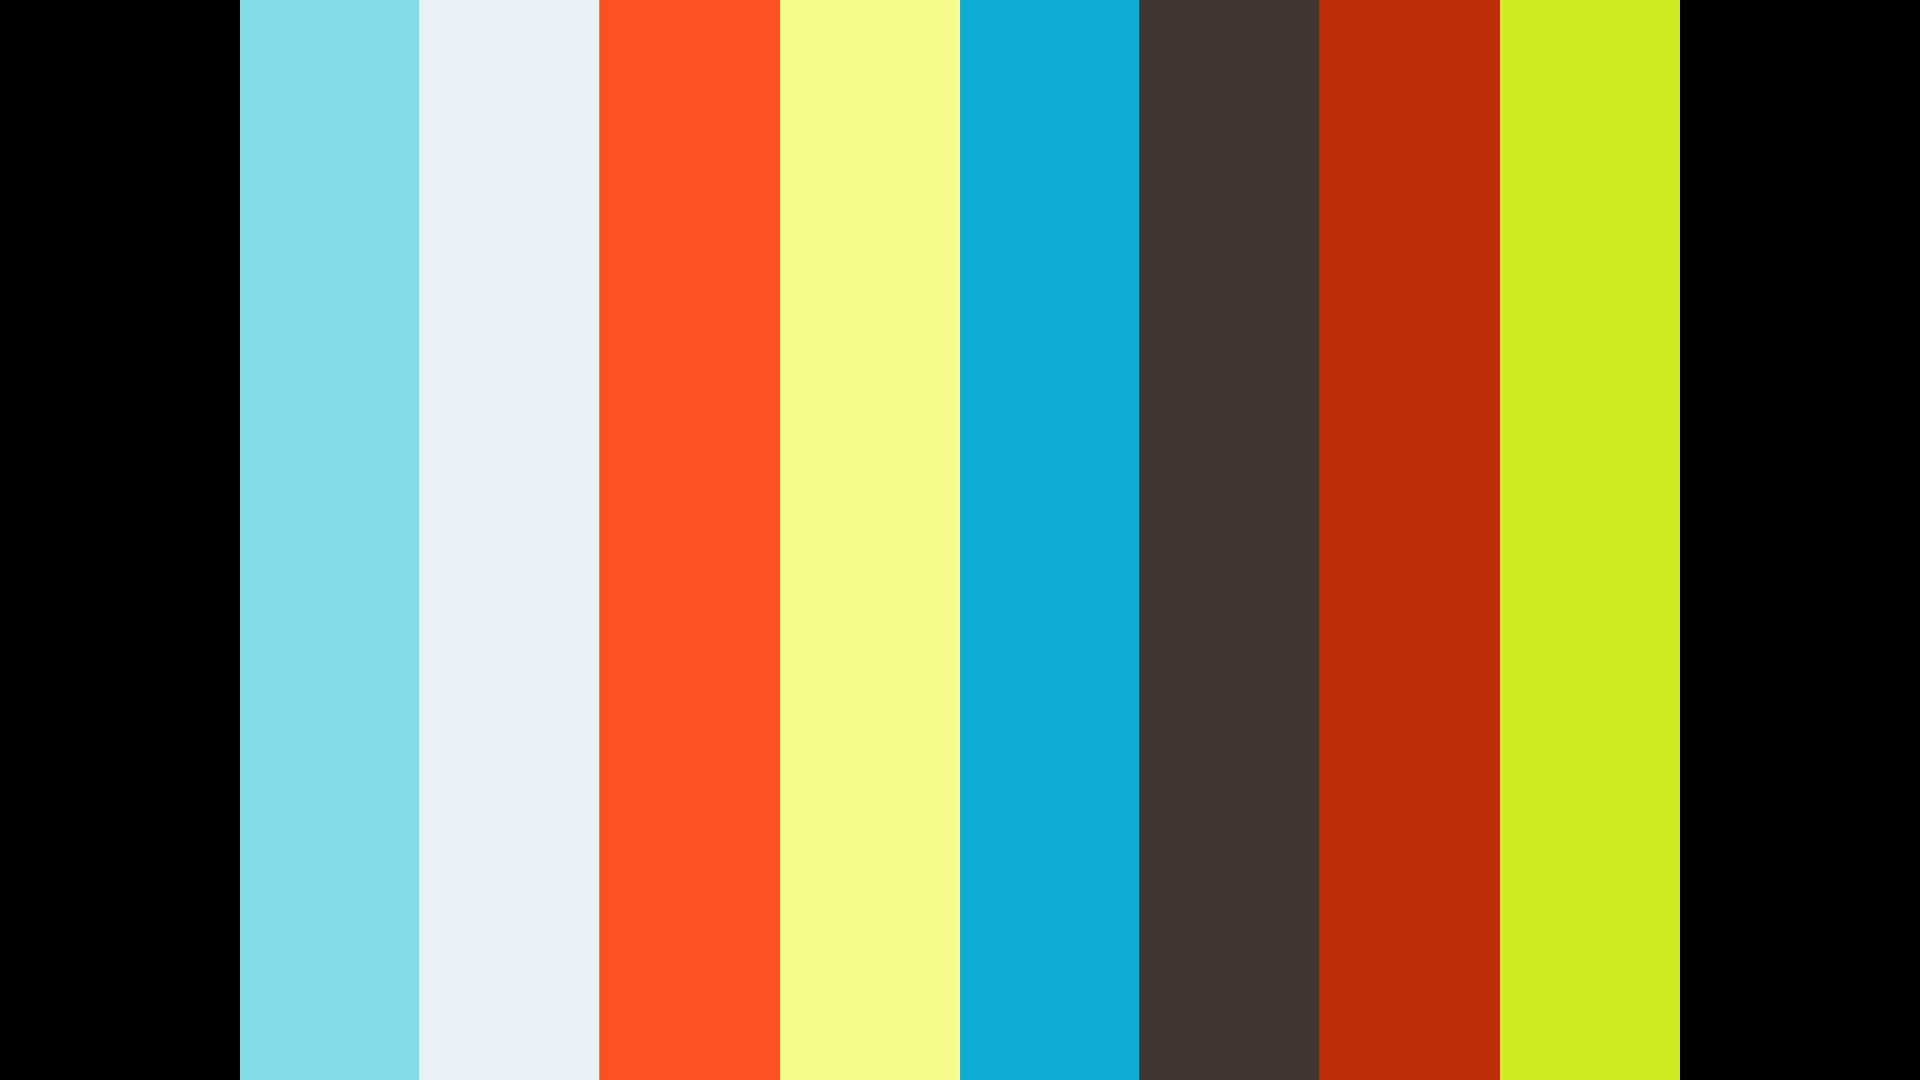 Our Team: Sherry Tsai